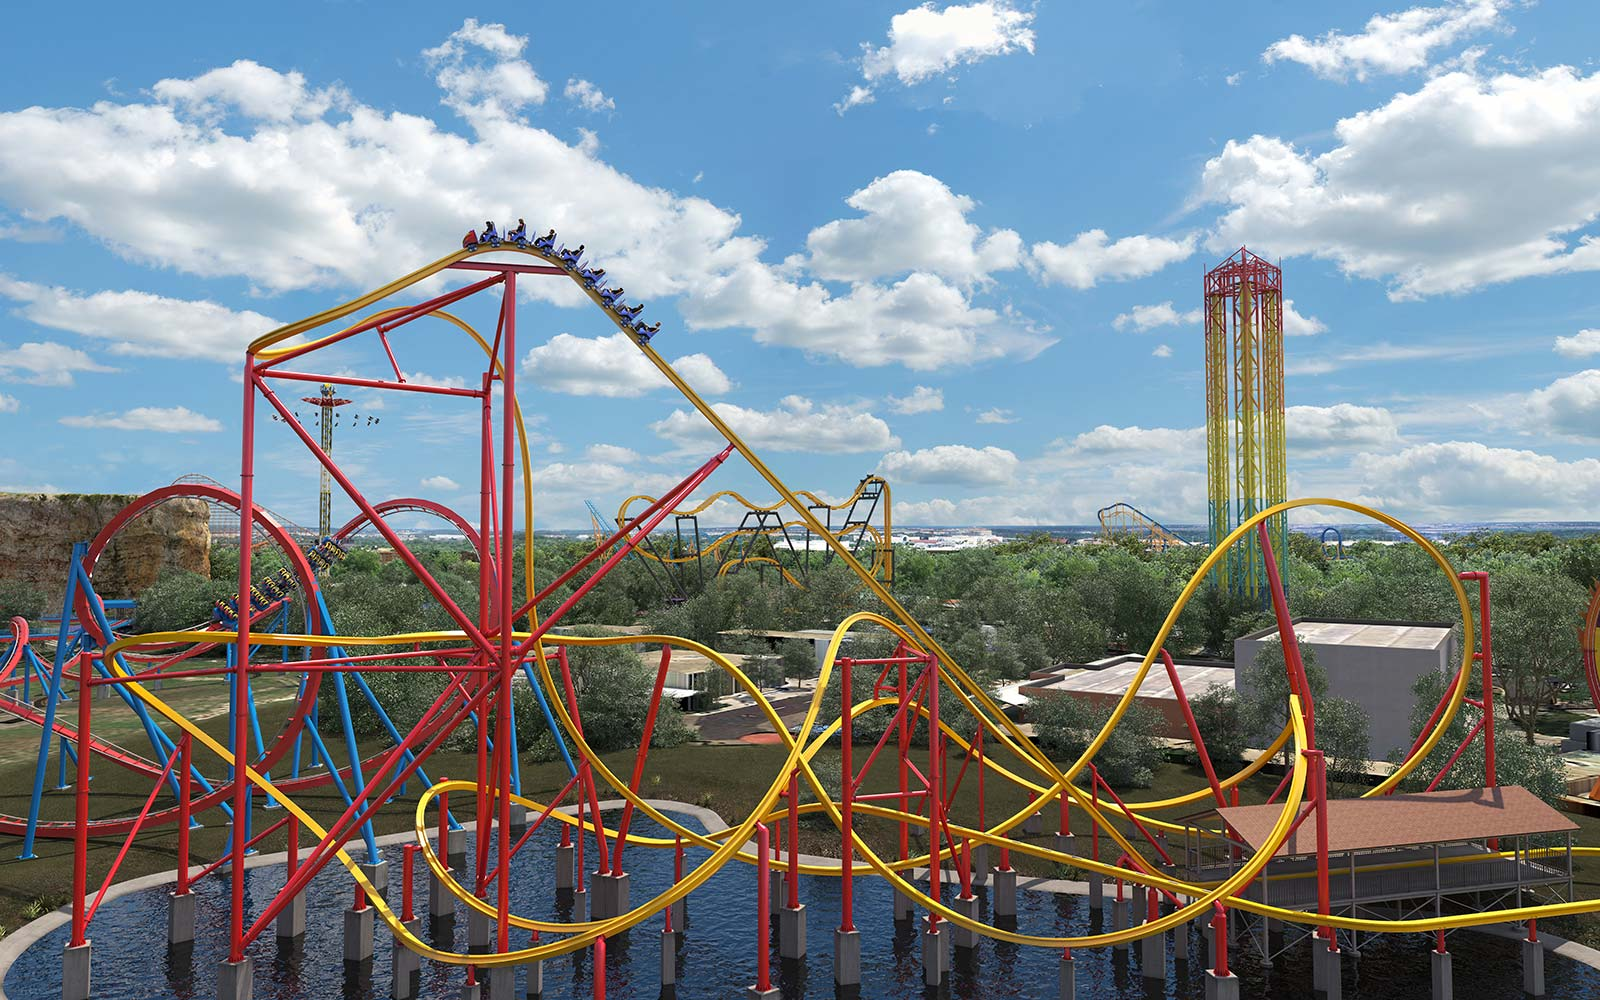 Six Flags Fiesta Texas to Build Wonder Woman Roller Coaster